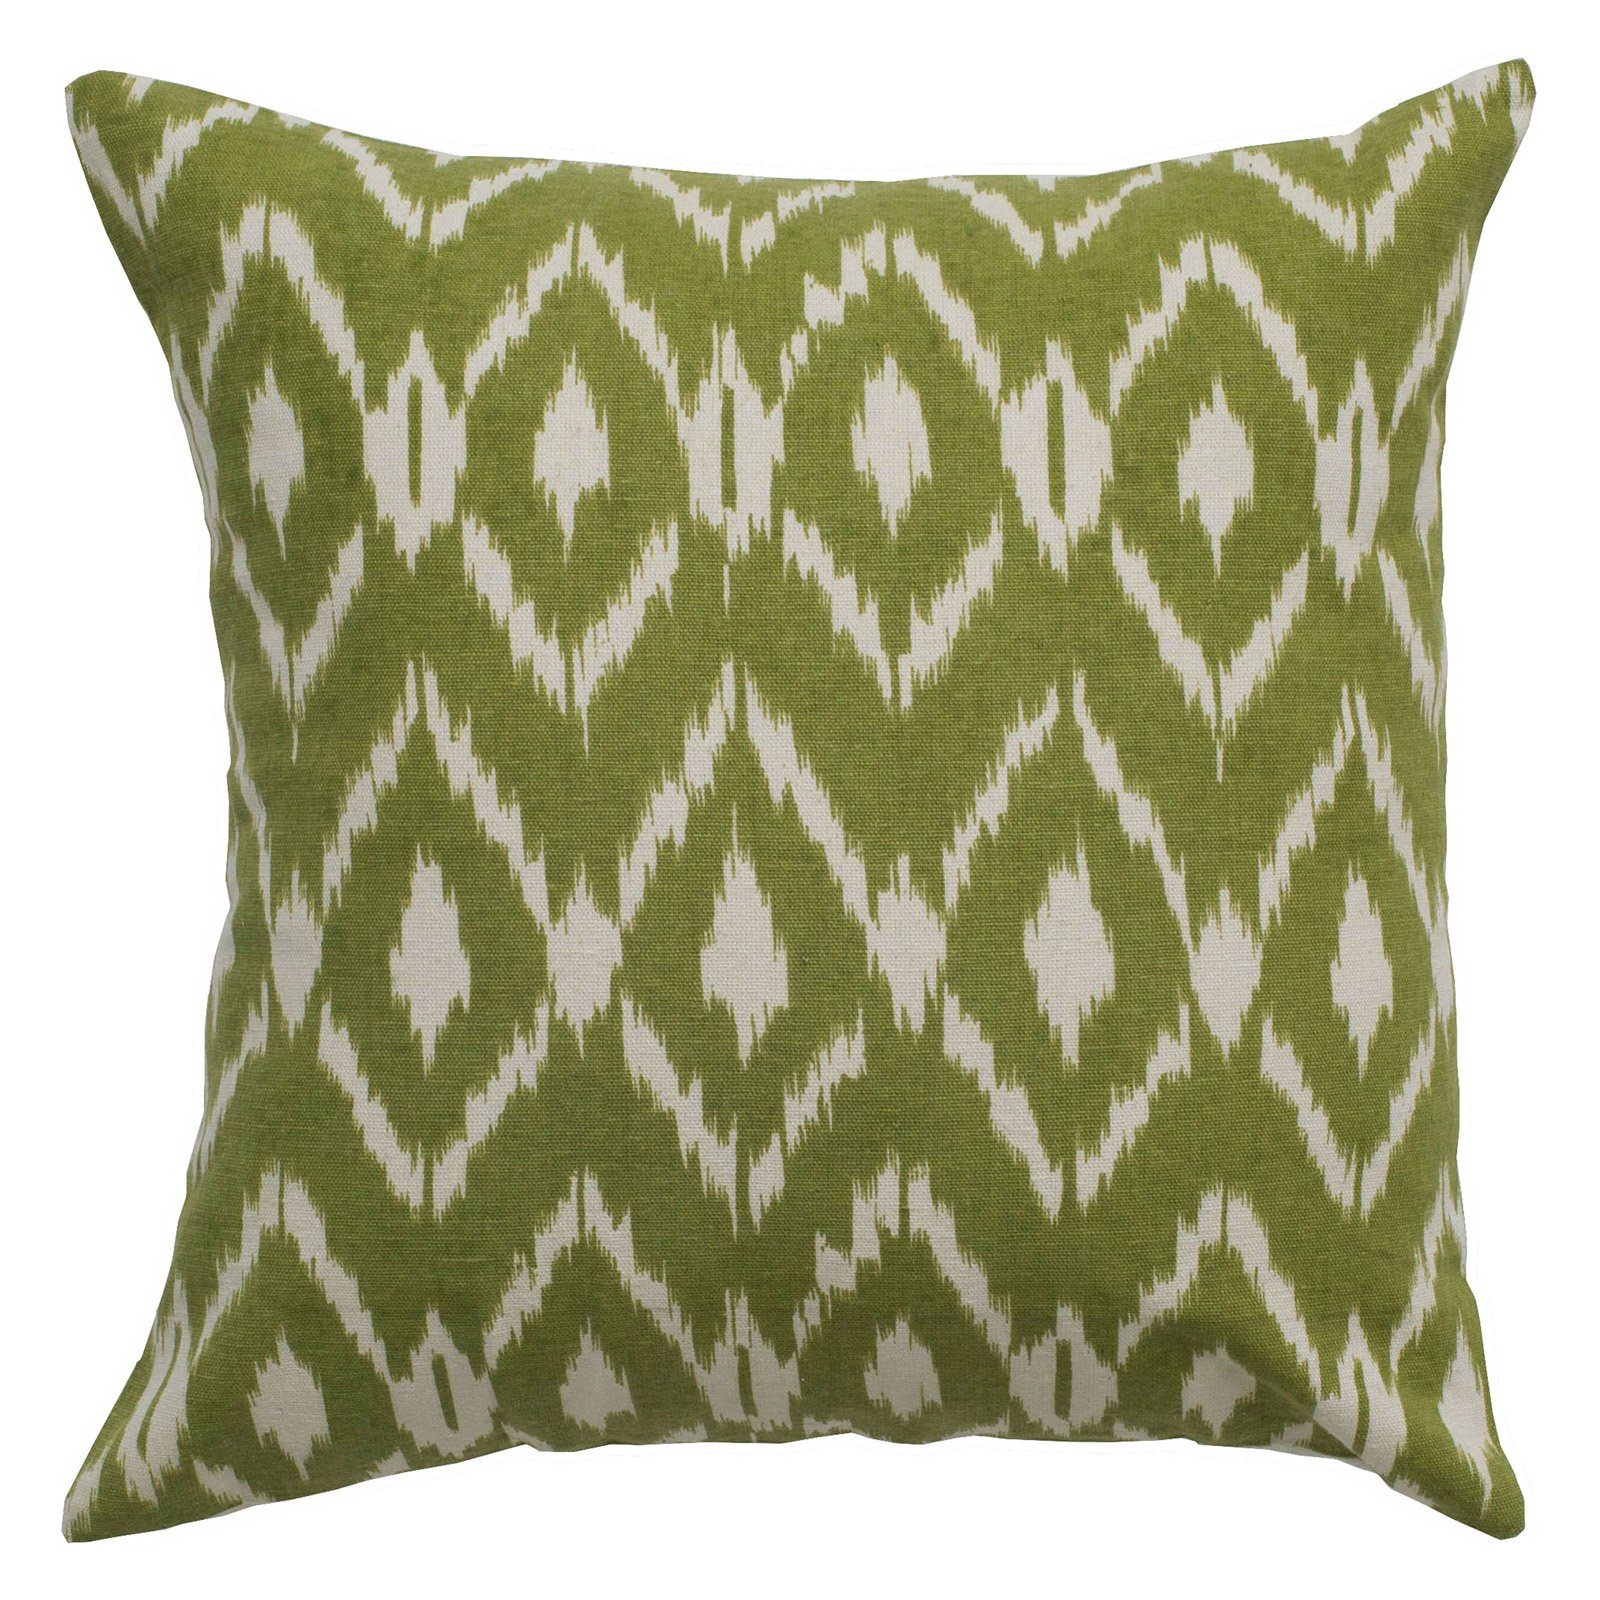 """Rizzy Home Fractured Ikat Cotton Decorative Throw Pillow, 18"""" x 18"""", Navy Blue"""